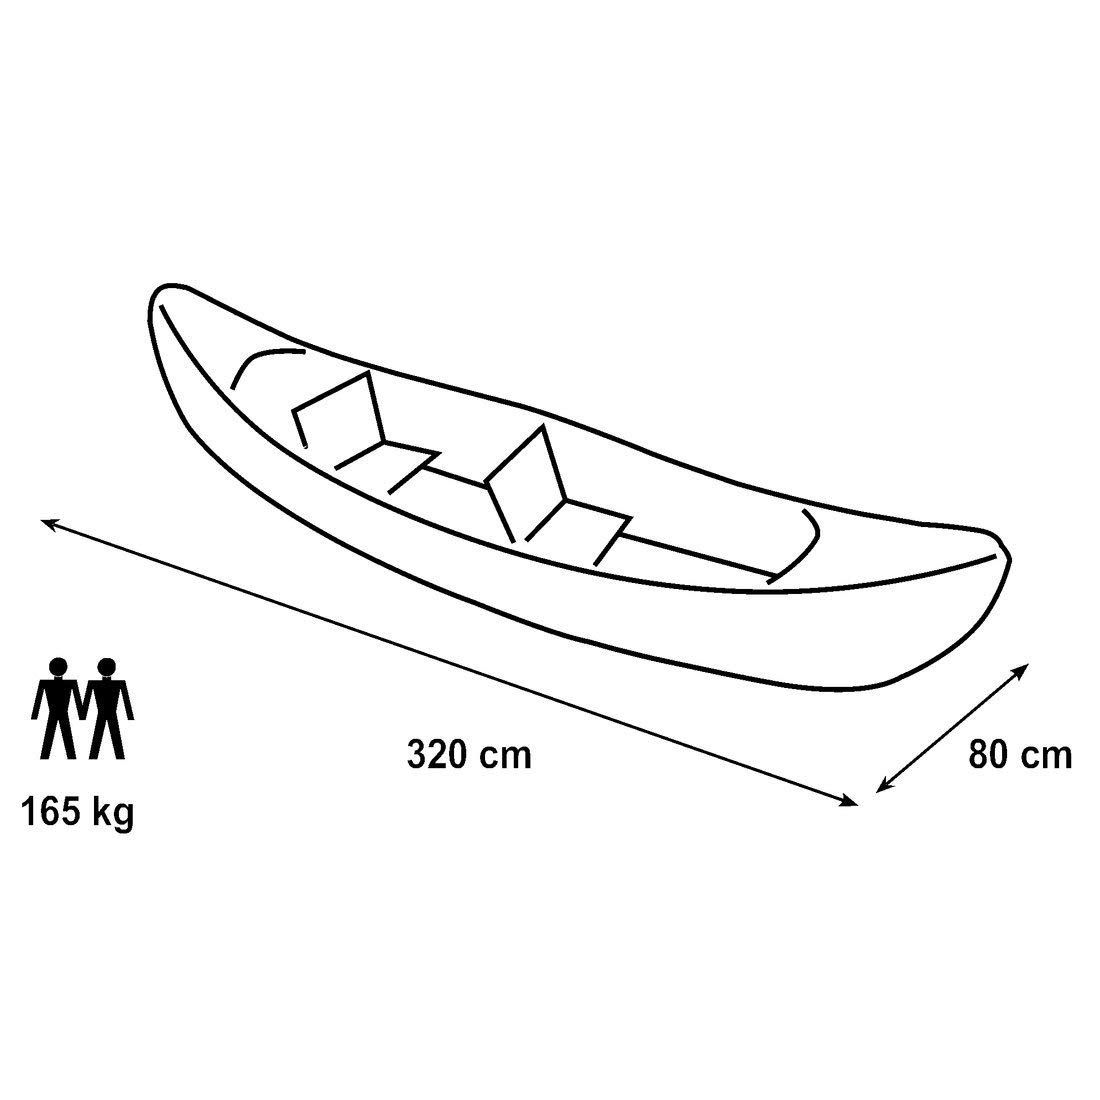 La mejor canoa hichable -oferta amazon-kayak decathlon barato-medidas